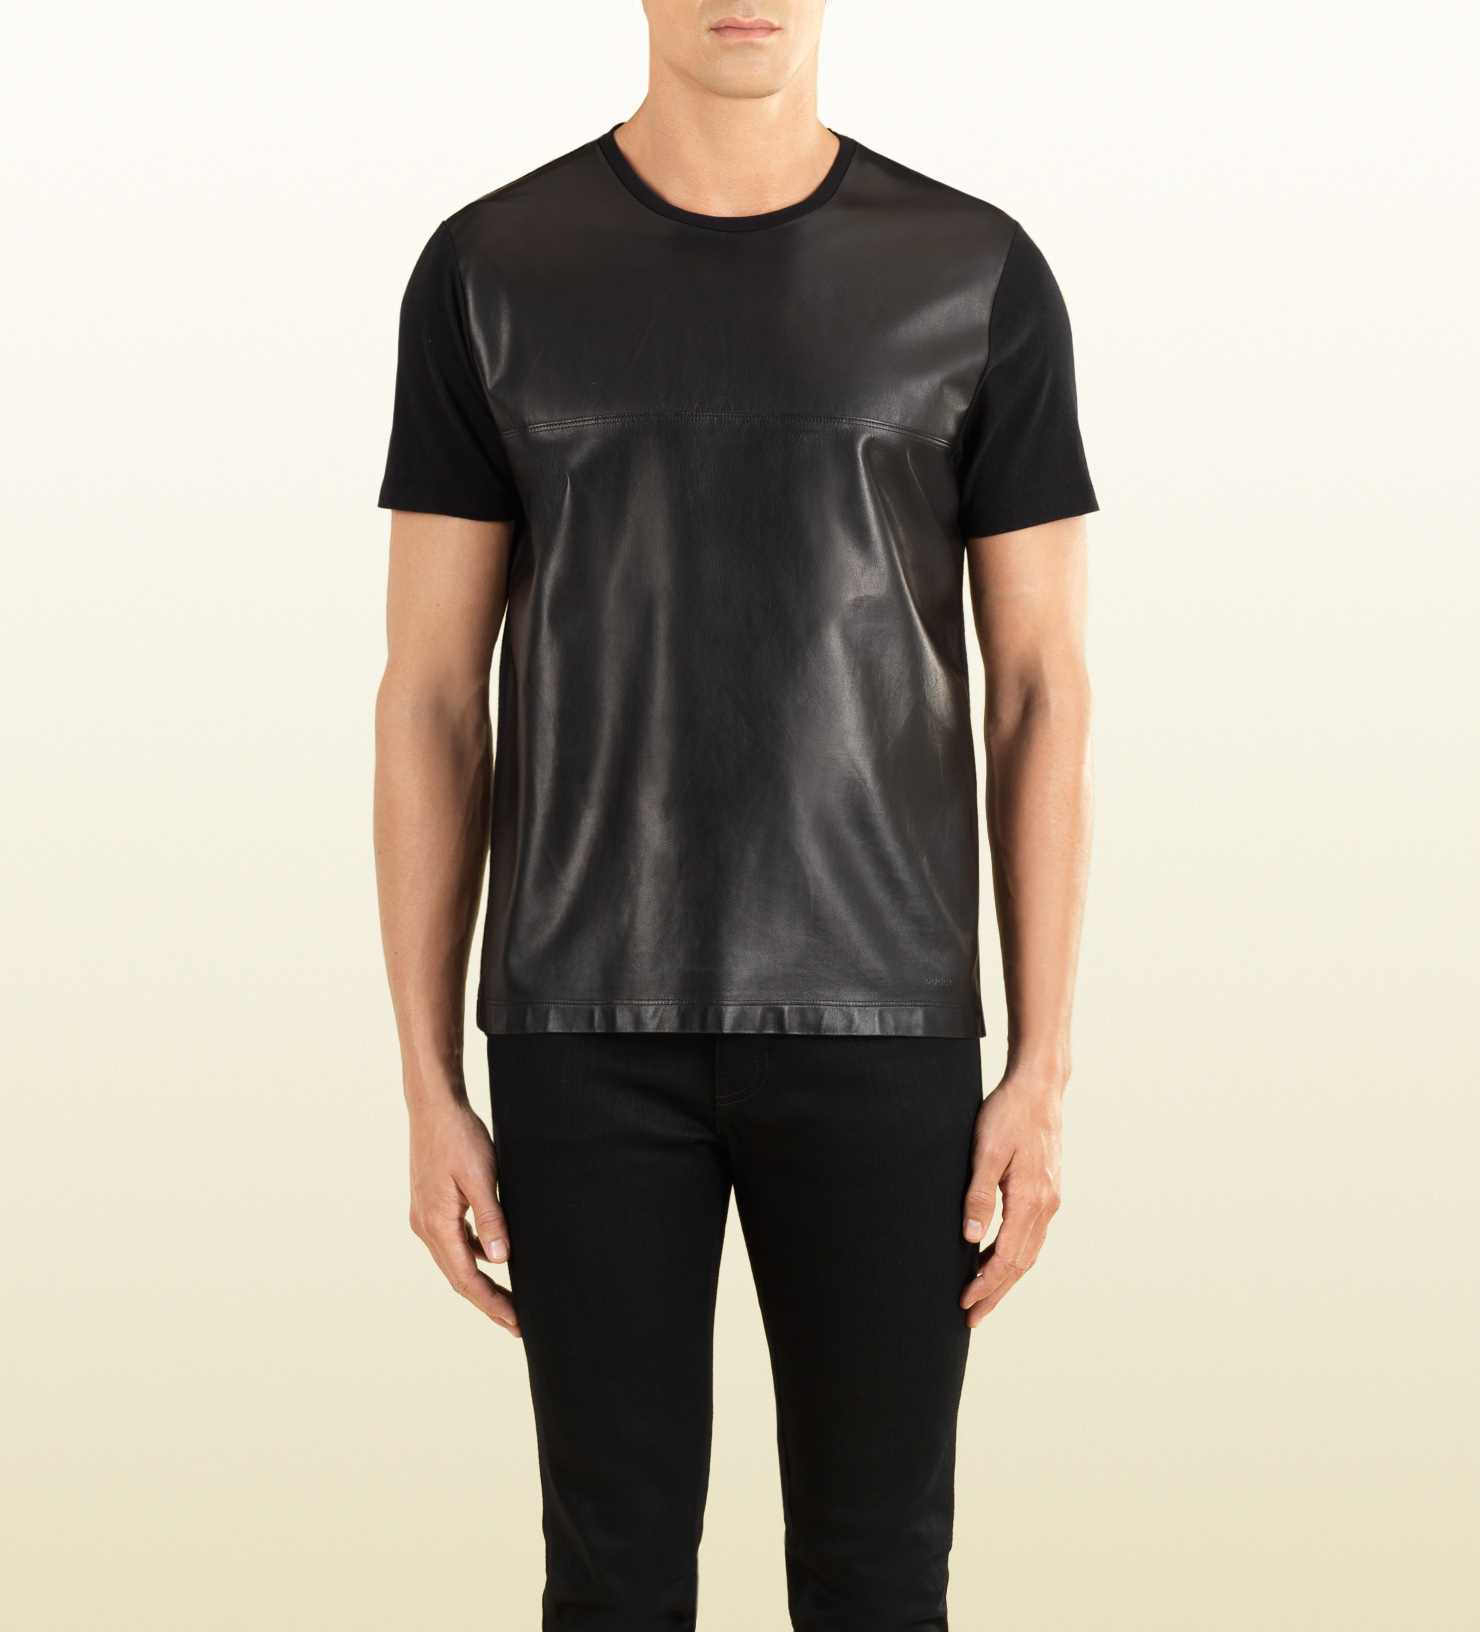 gucci t shirt with leather front in black for men lyst. Black Bedroom Furniture Sets. Home Design Ideas